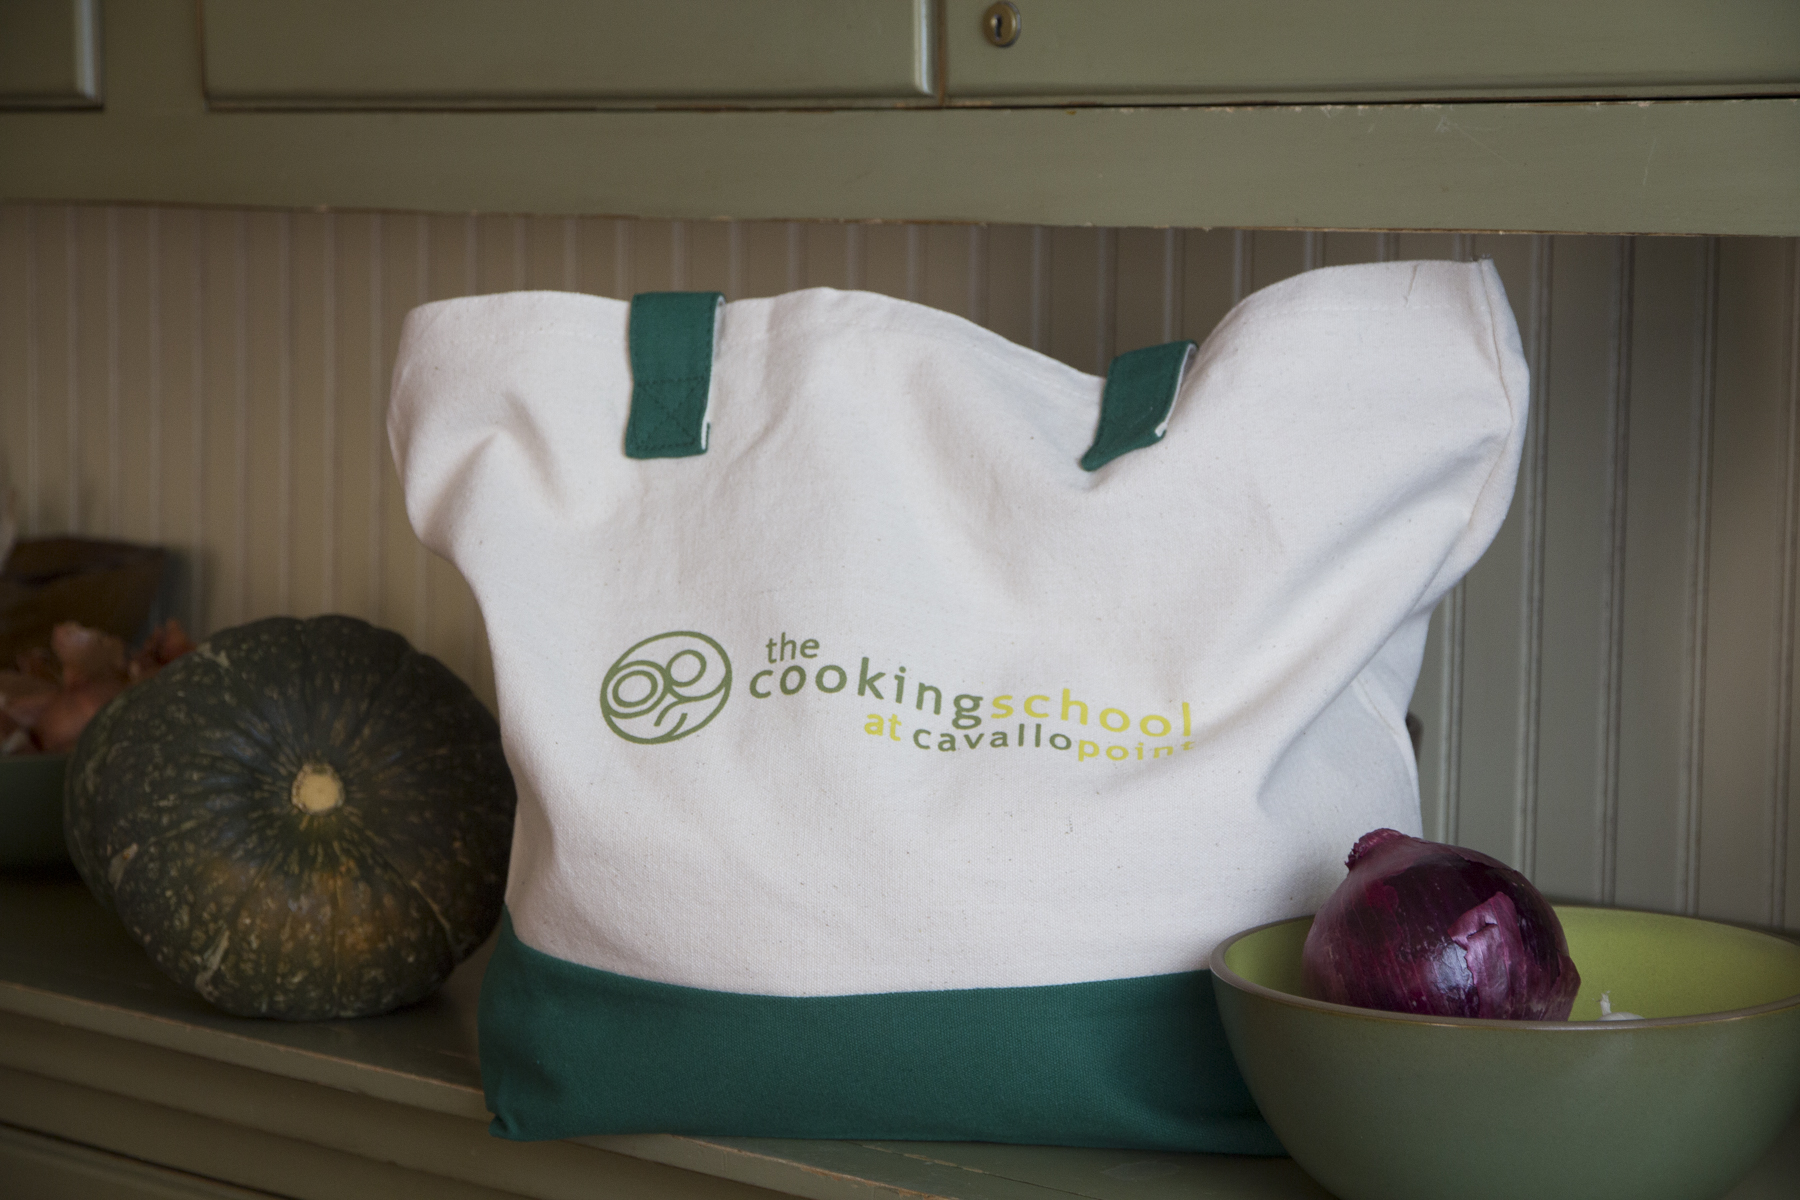 You may also like: - Cavallo Point Cooking School Farmer's Market Tote